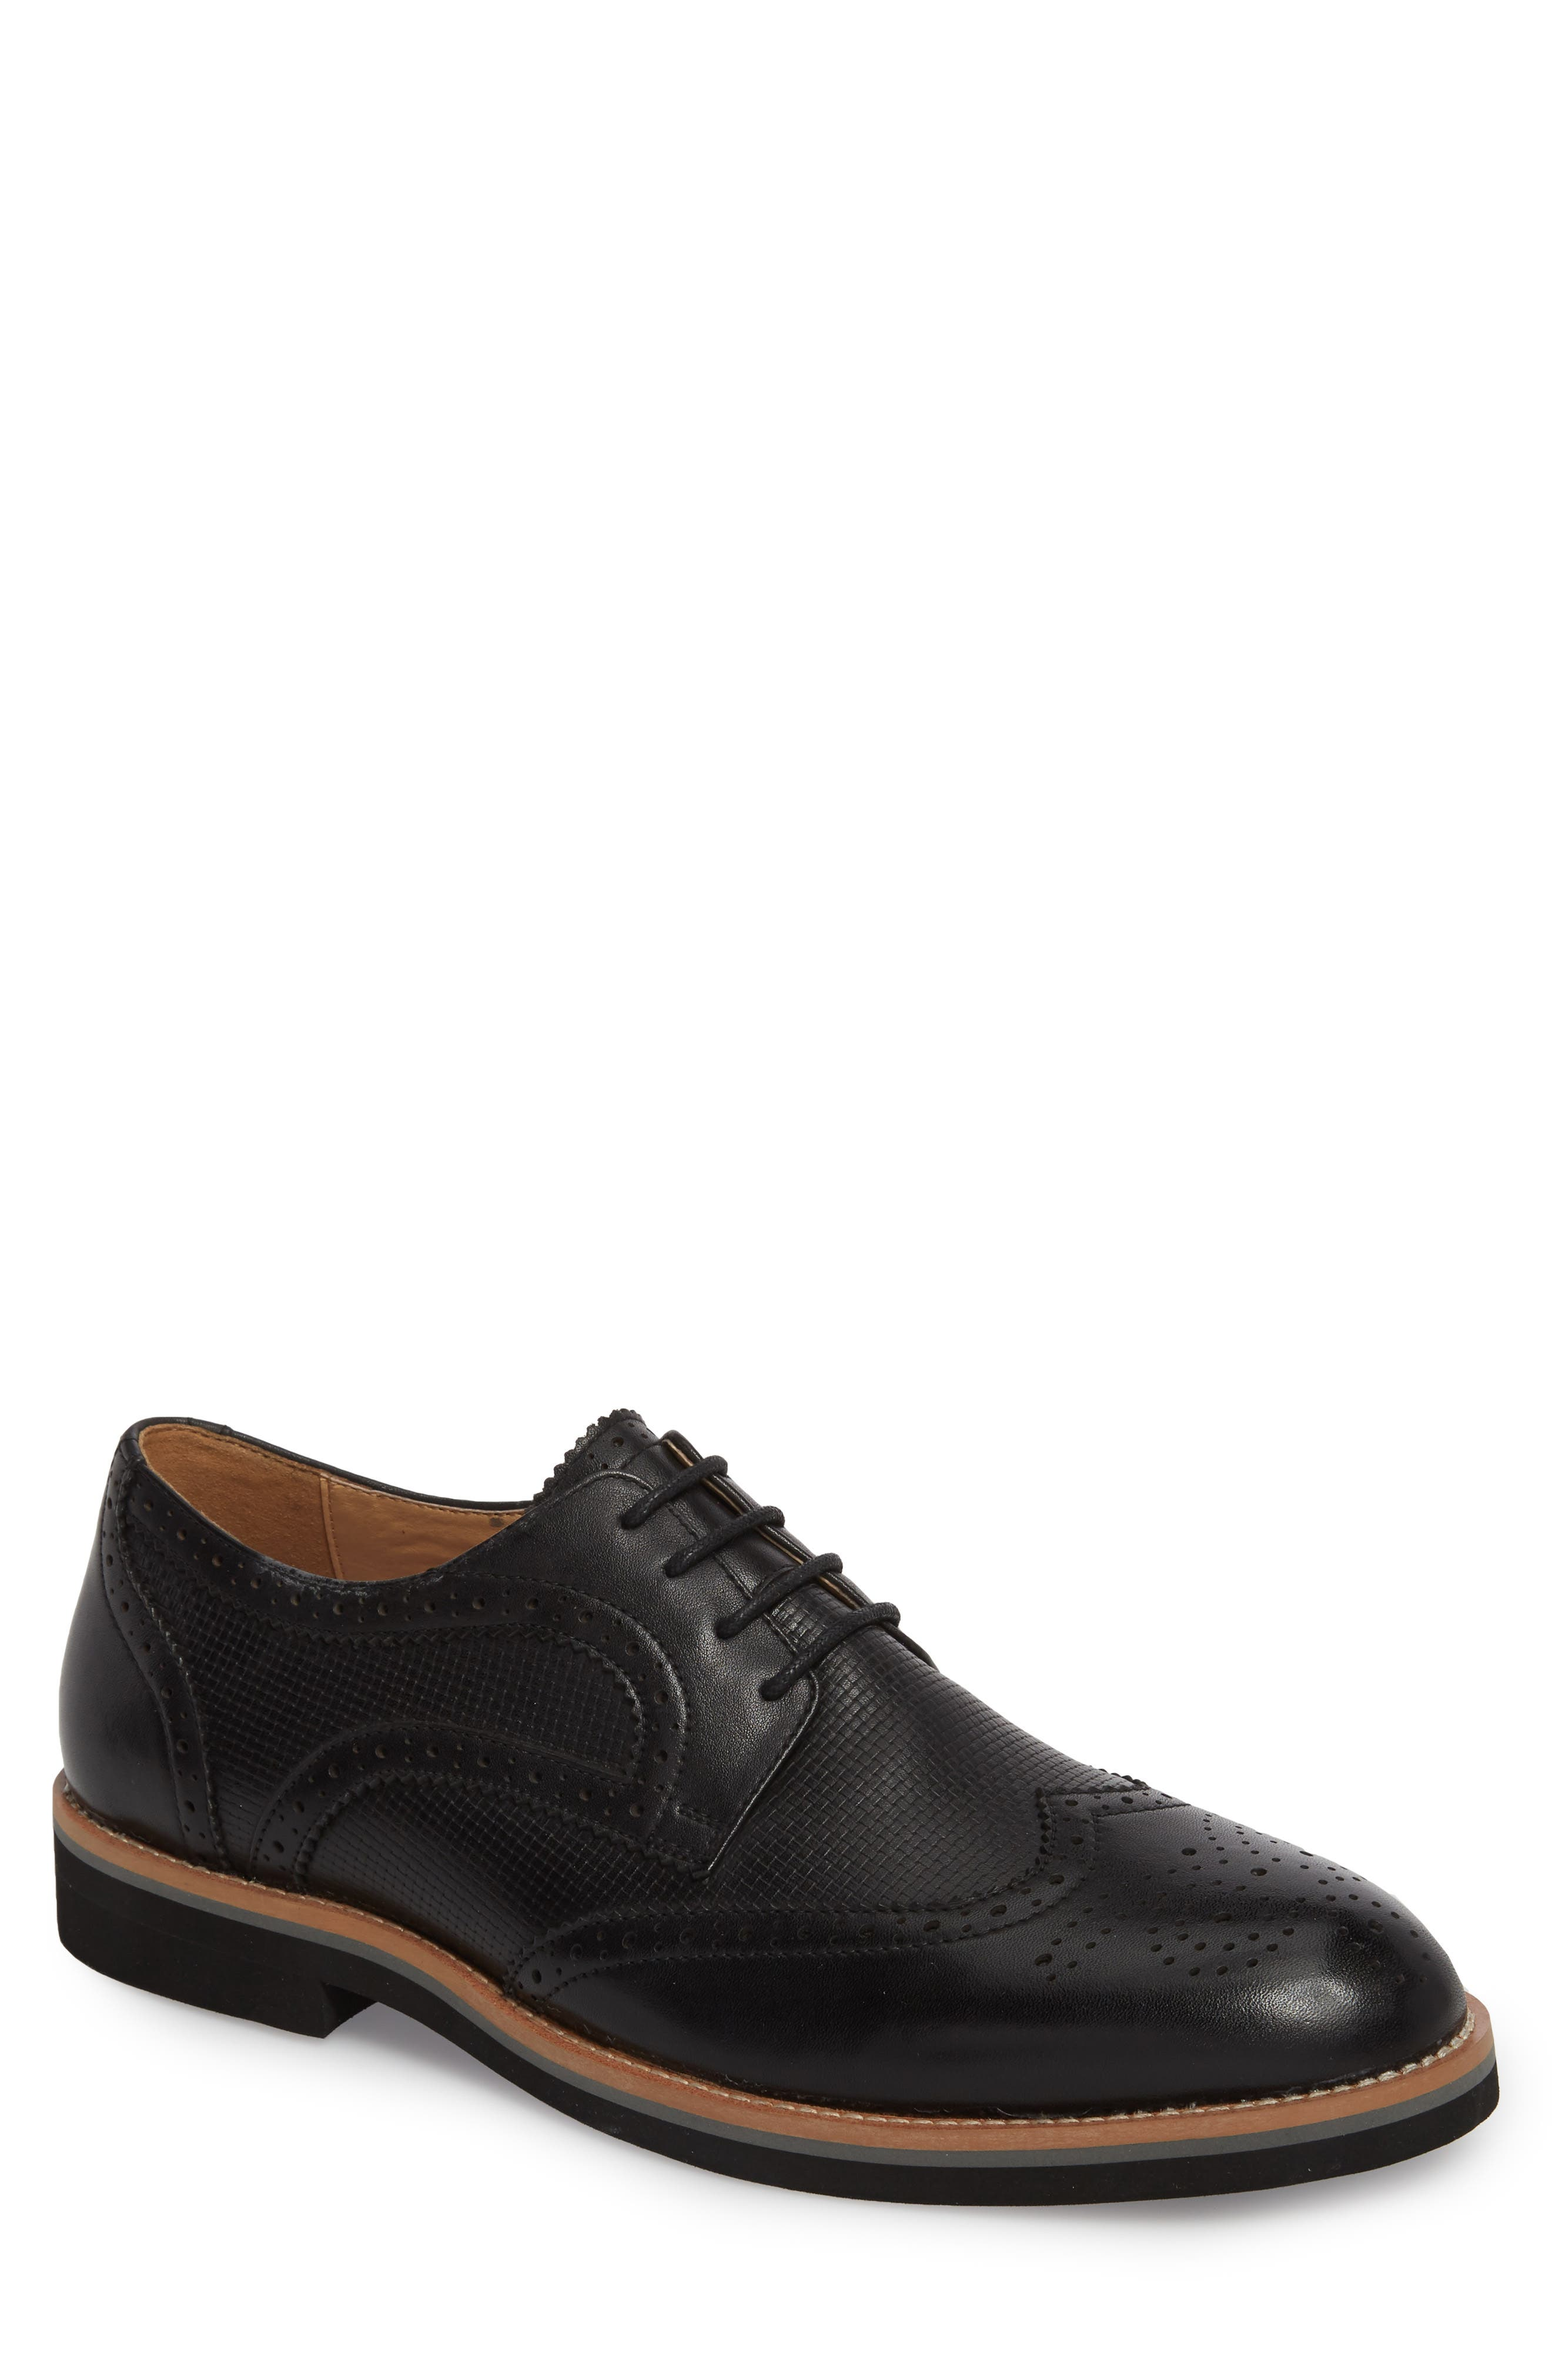 Cleave Embossed Wingtip,                             Main thumbnail 1, color,                             BLACK LEATHER